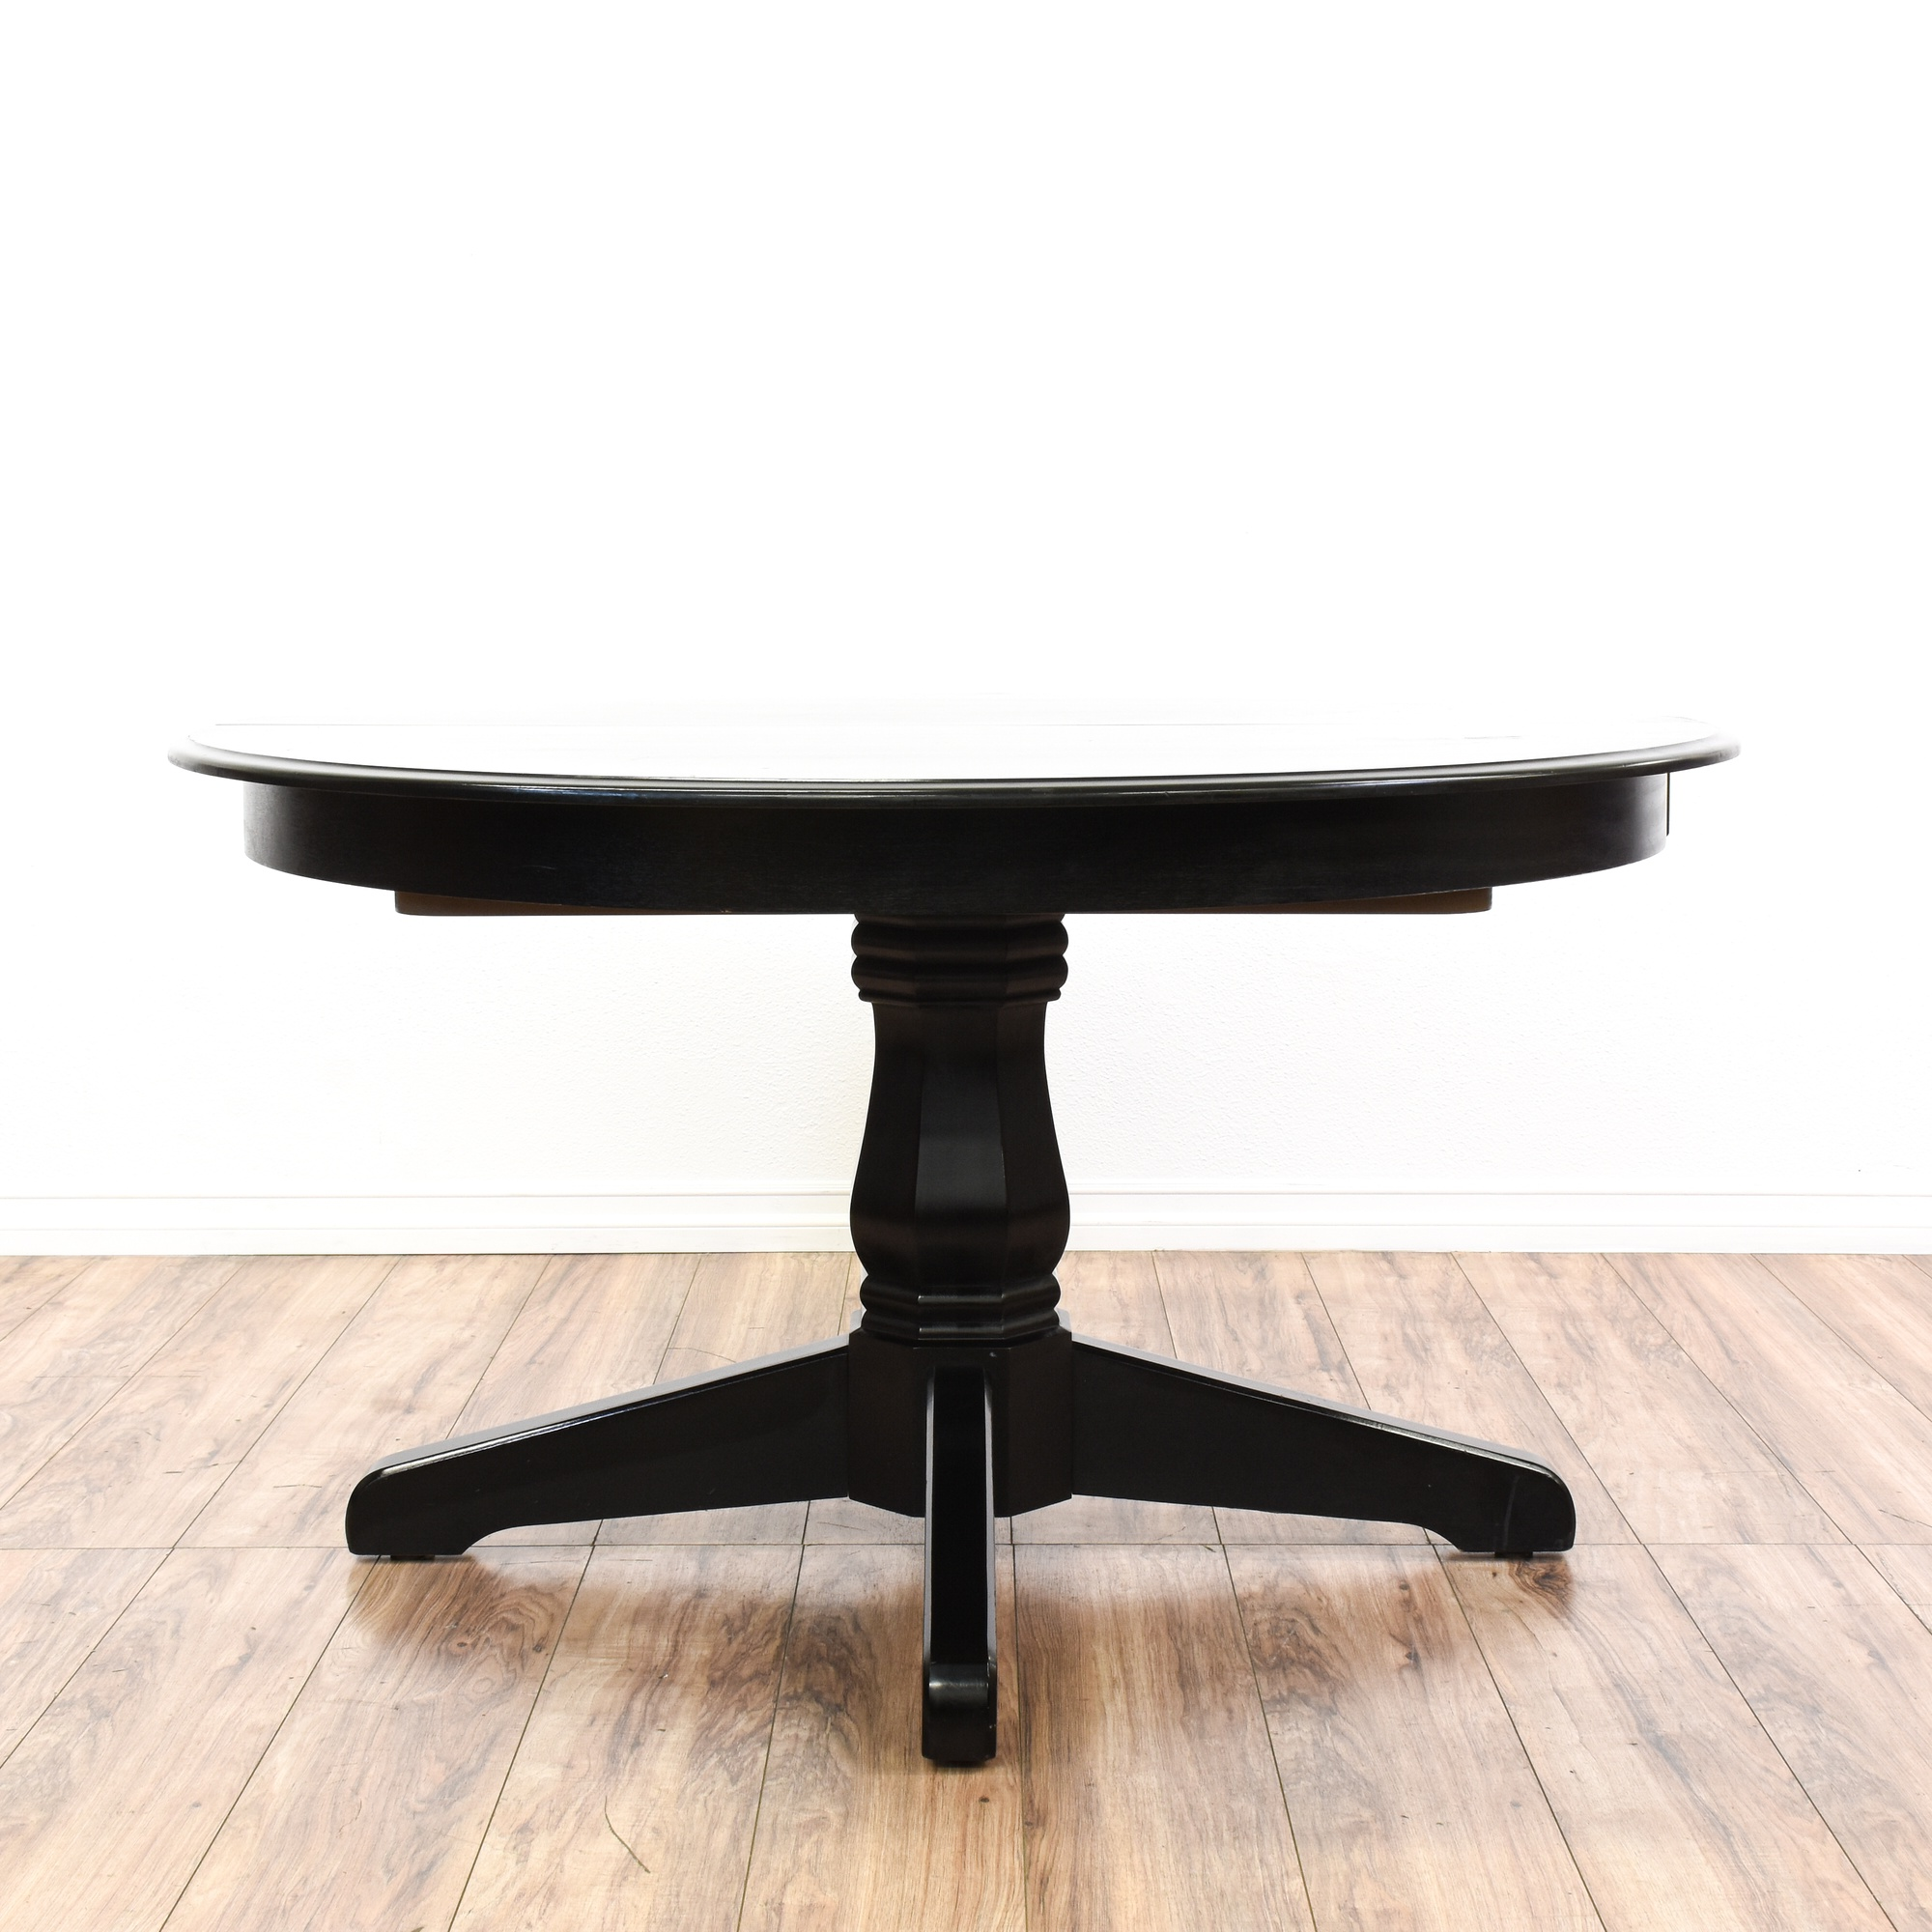 Black Pedestal Base Dining Table W Leaf  Loveseat. Boos Block Table. Marble Office Desk. Curved Writing Desk. Uline Tables. 3 Drawer Basket Storage Unit. Changing Table Mattress. Writing Table. Wedding Tables And Chairs